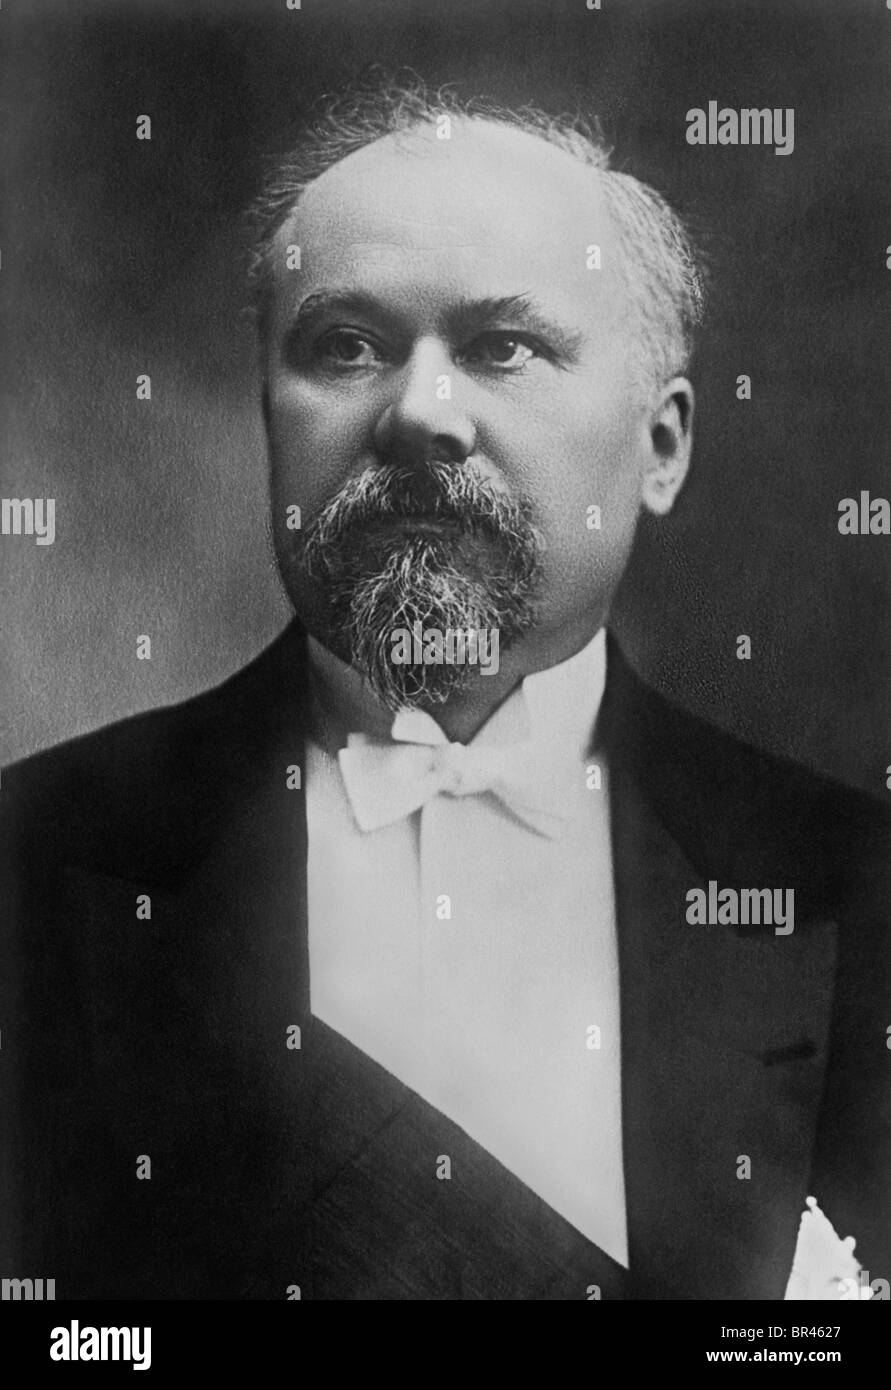 Raymond Poincaré (1860 - 1934) - French Prime Minister 1912 - 1913, 1922 - 1924 + 1926 - 1929, and French President - Stock Image